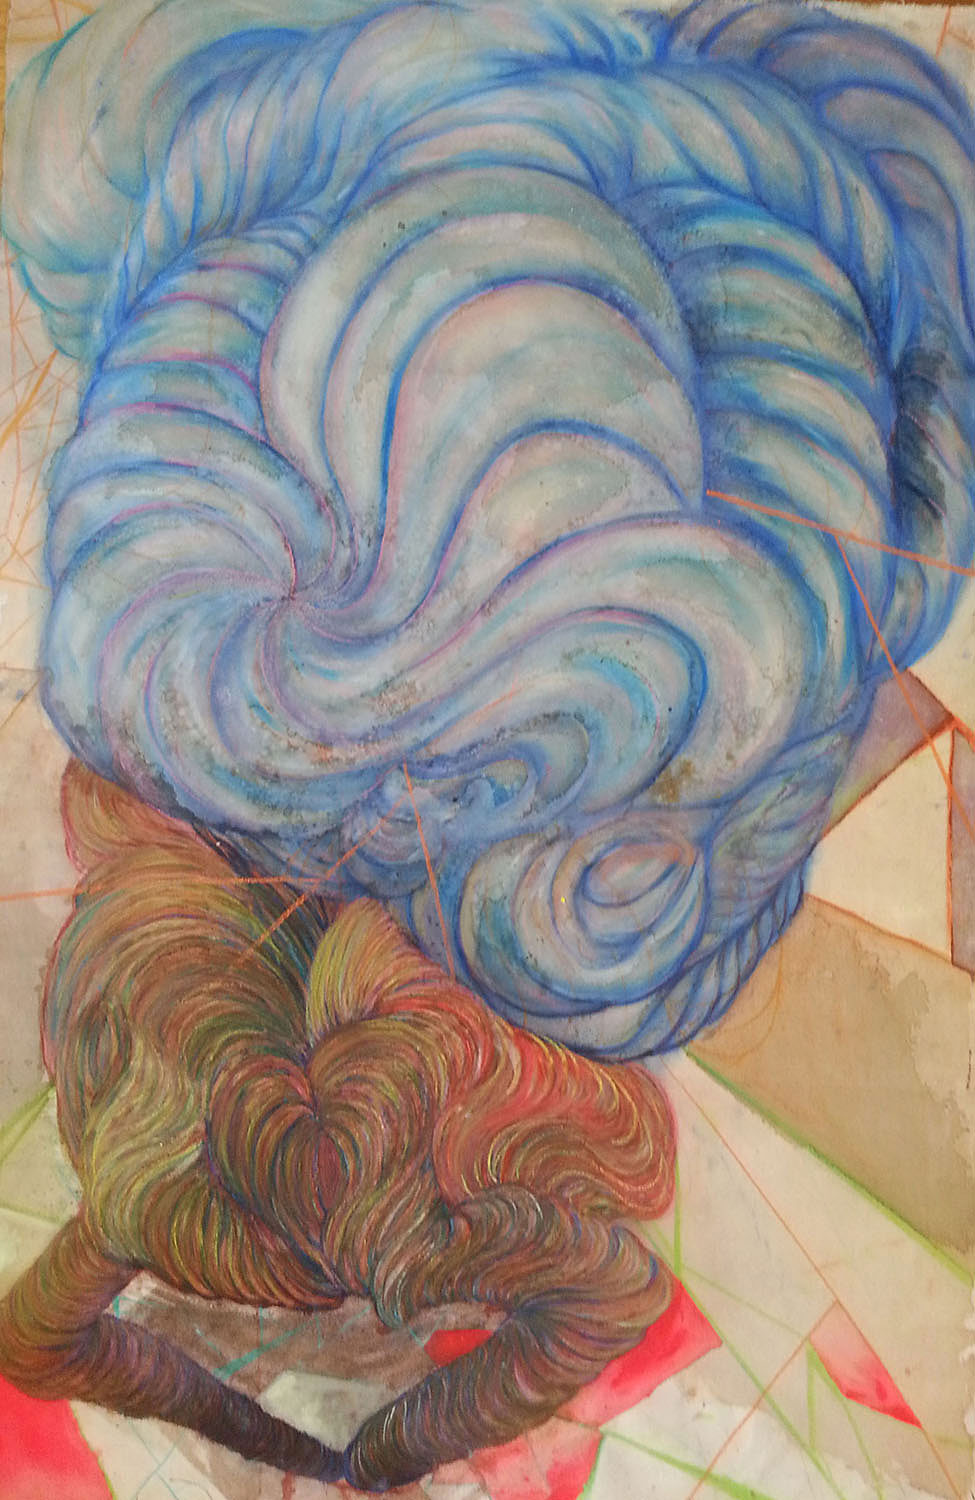 Rachel Joob, MyHeadintheClouds, 2013. Wine, coffee, chalk pastel, salt, sugar and acrylic paint on raw canvas, 53.5 x35.5 in.